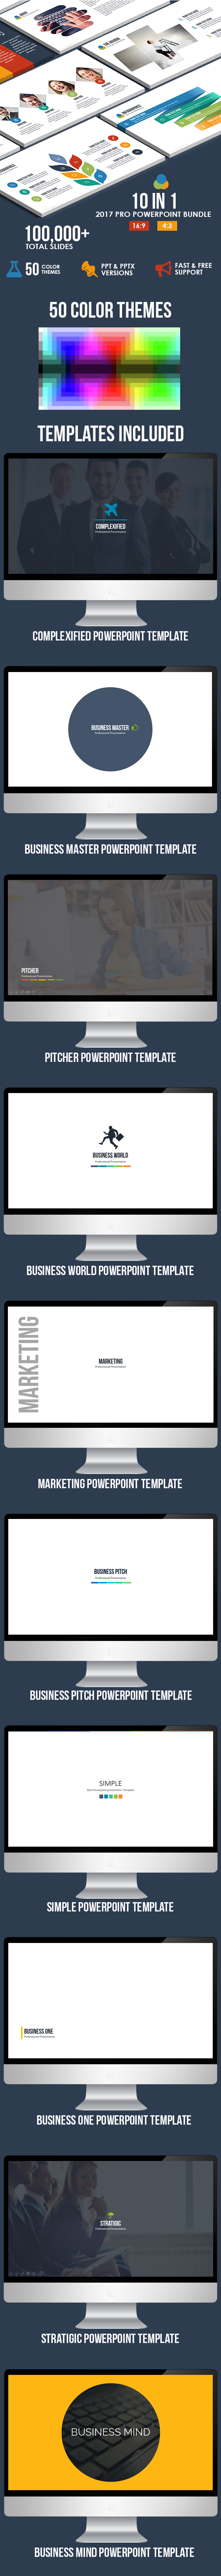 10 IN 1 - 2017 Pro Powerpoint Bundle - Business PowerPoint Templates